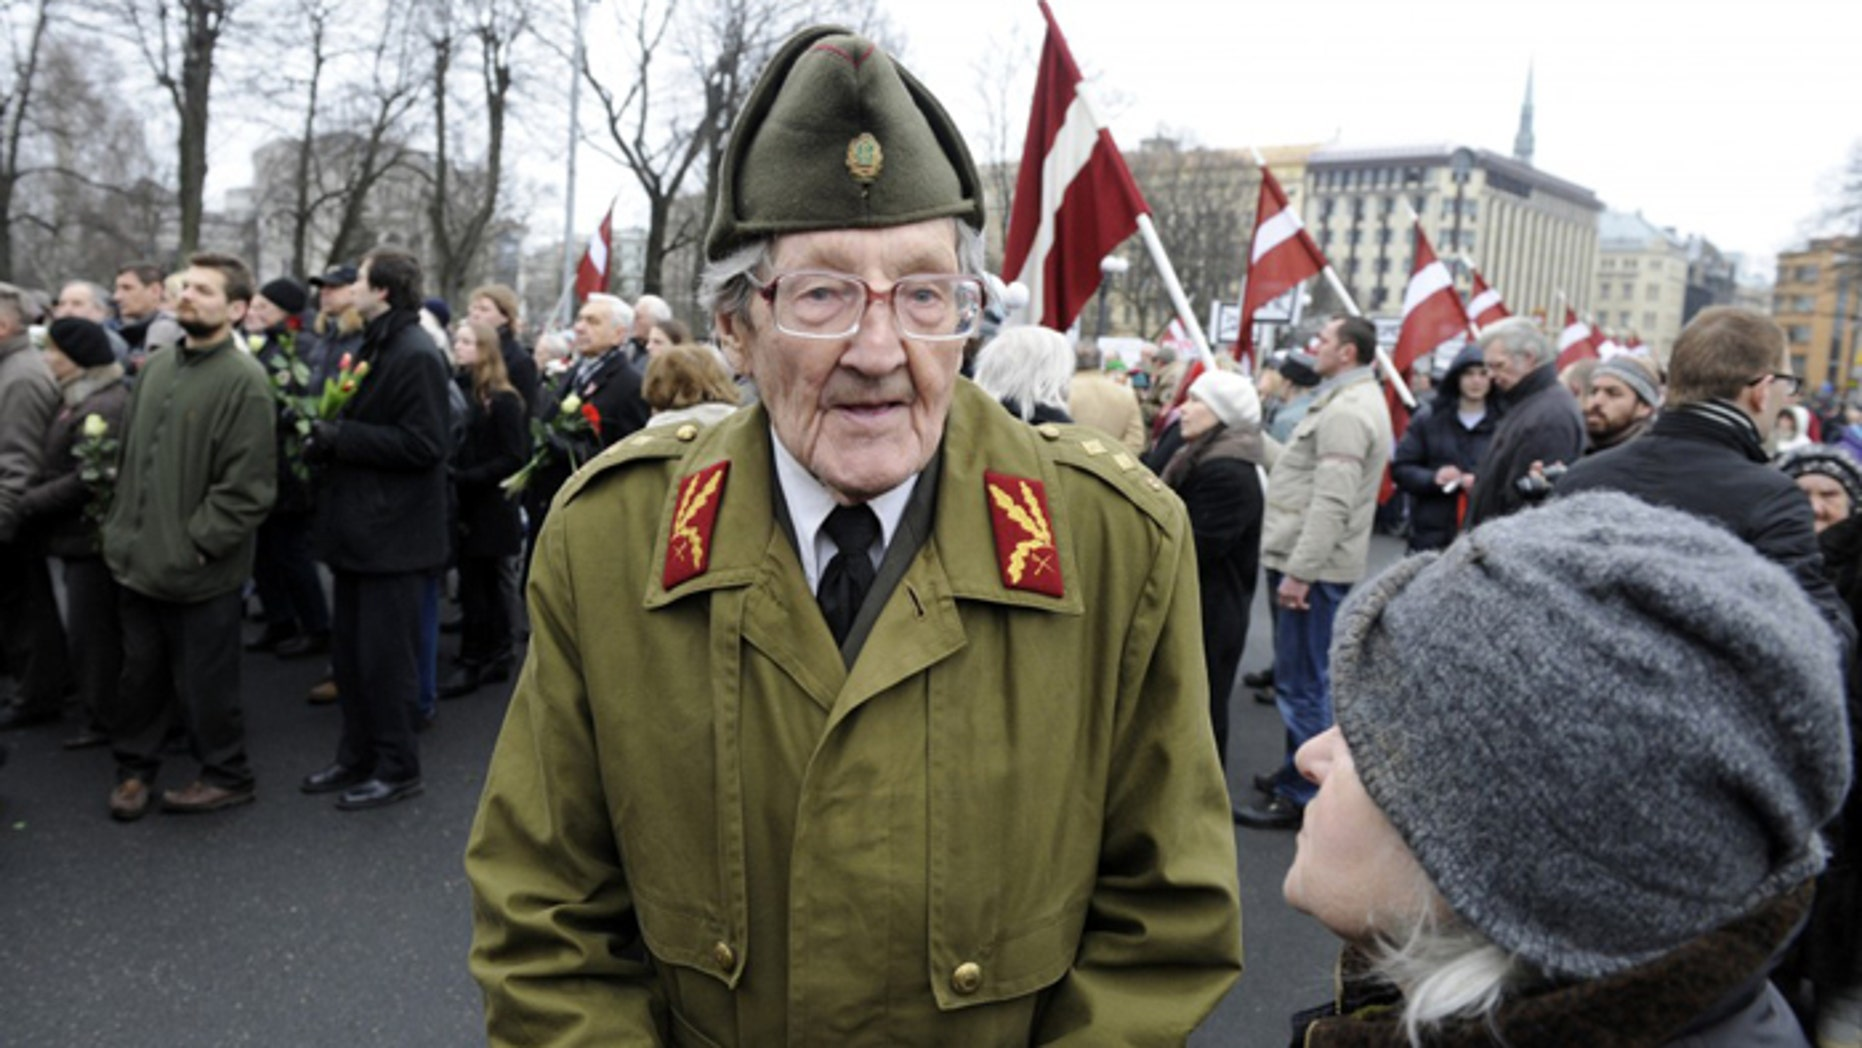 An elderly Latvian takes part in a ceremony to honor soldiers who fought in a Waffen SS unit during World War II, in Riga, Latvia, last year. (AP/Roman Koksarov)